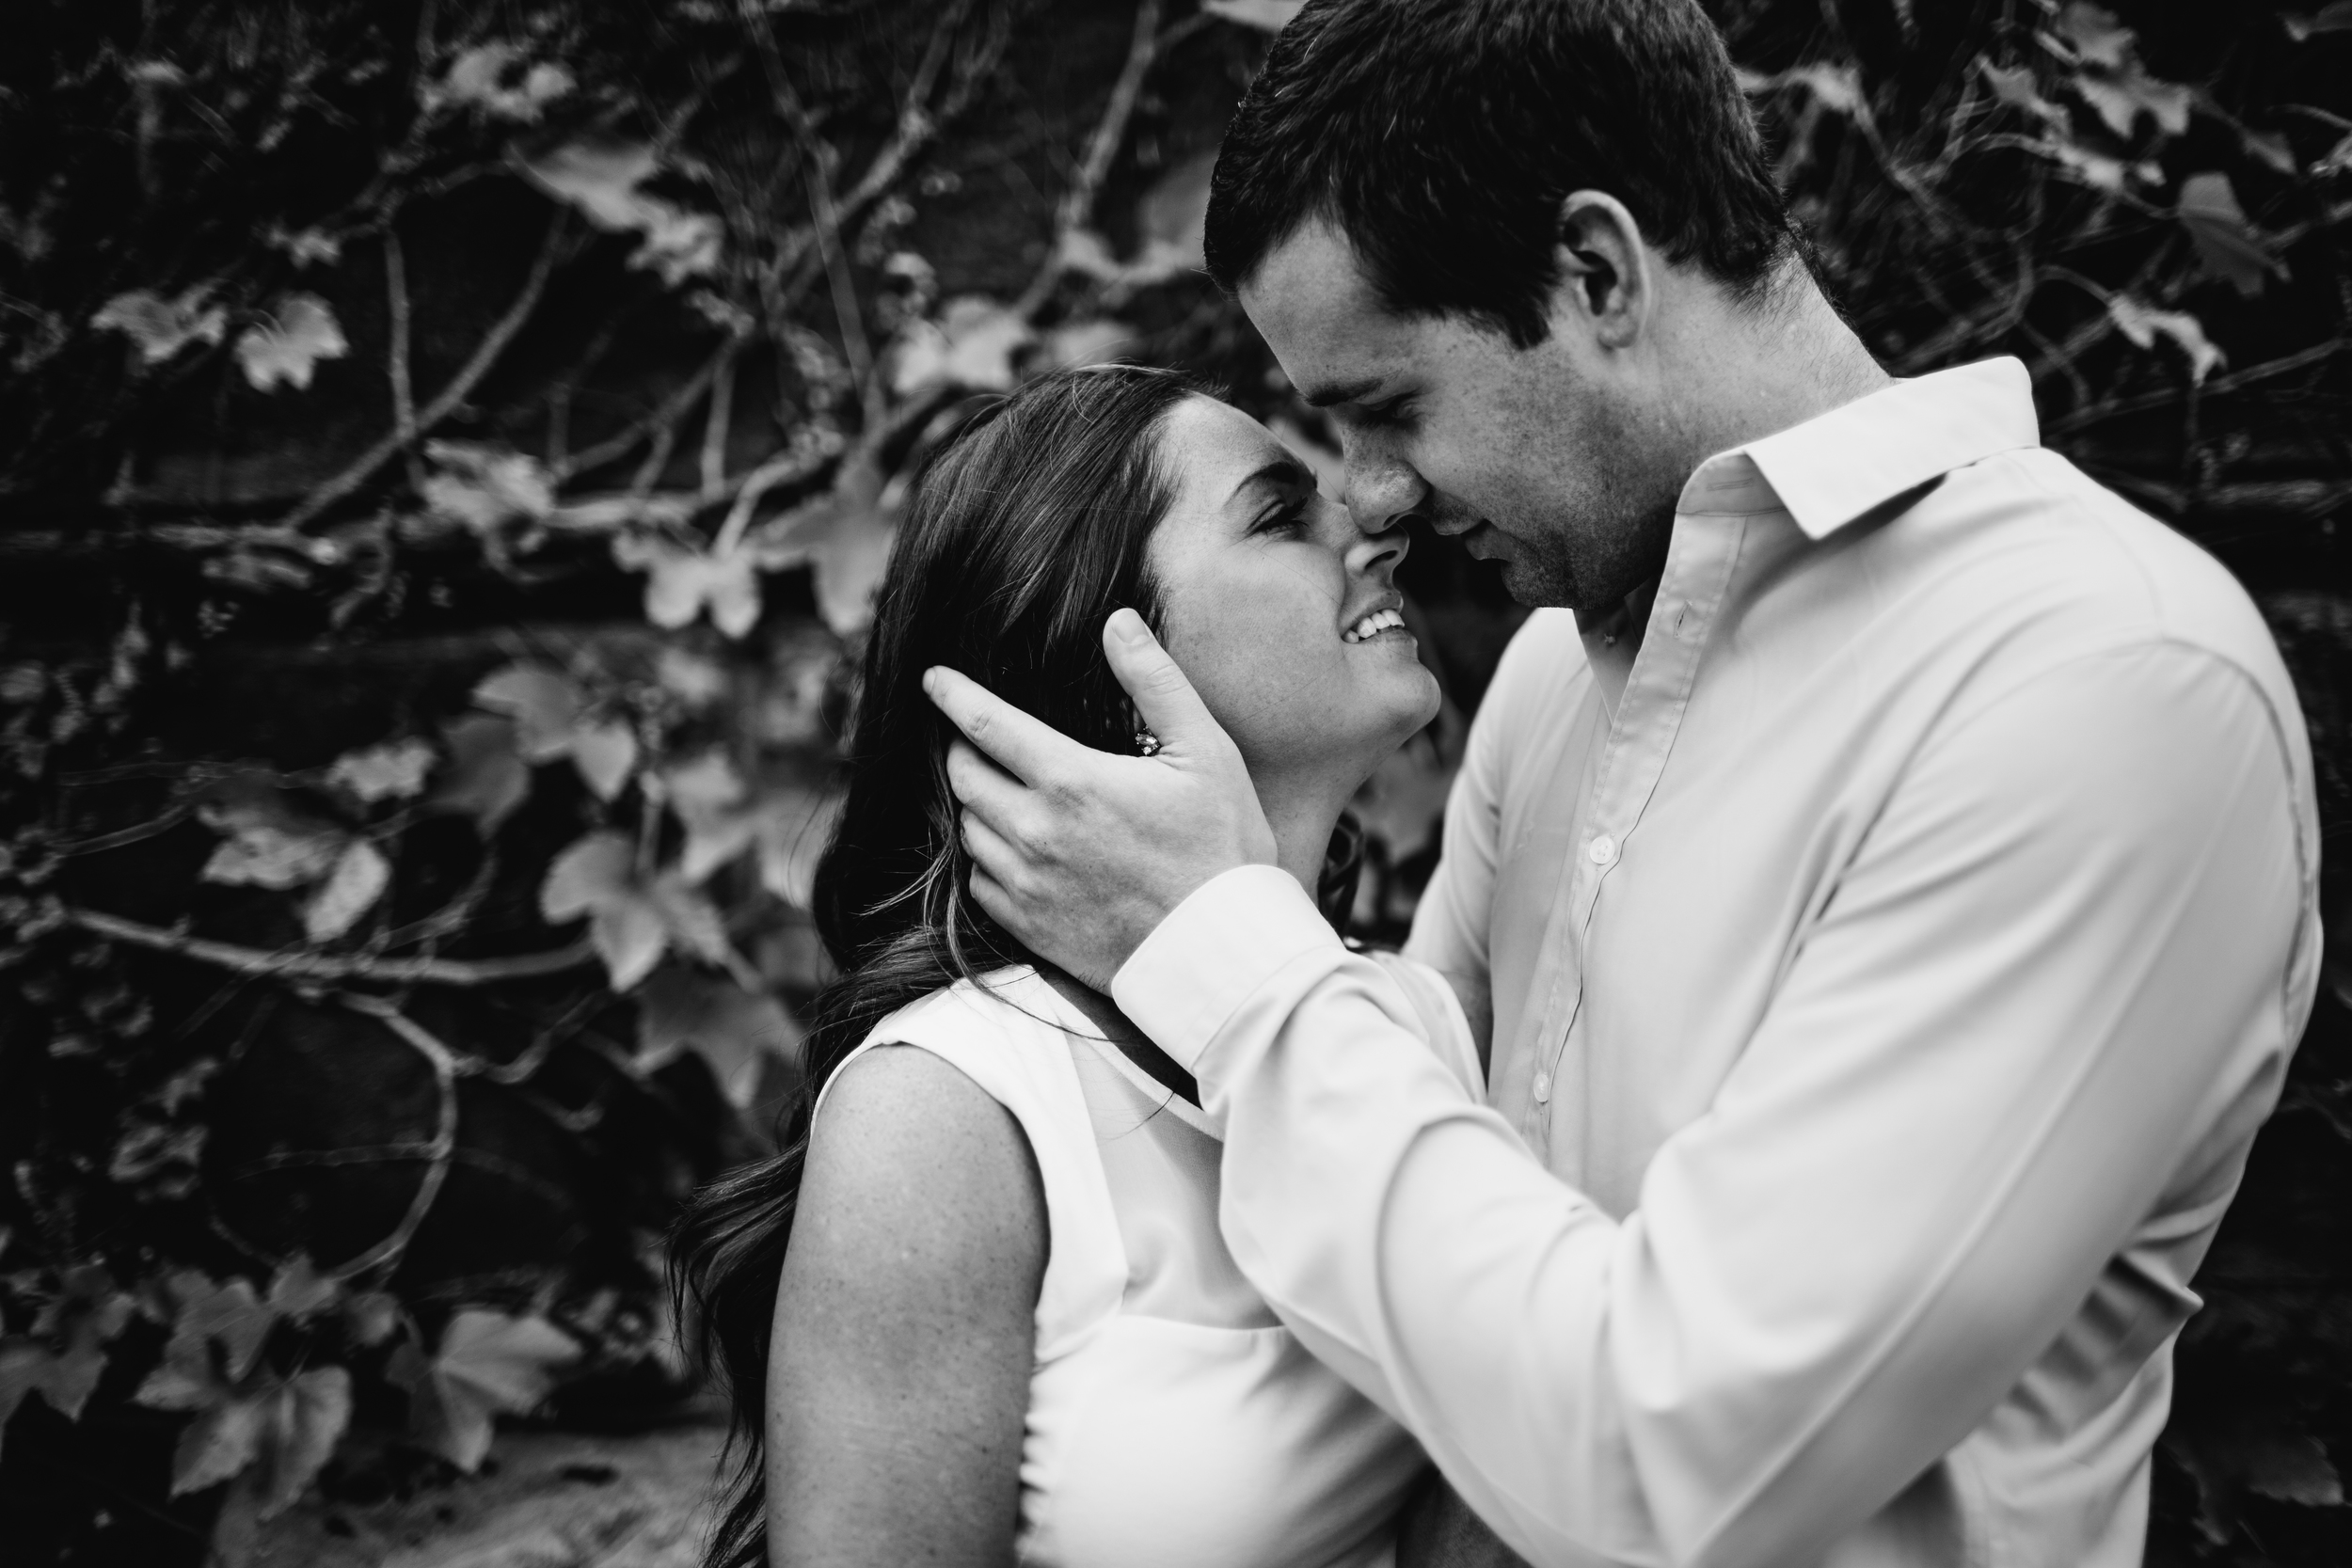 BRITTANYandKEVIN-Engagement2015 (67 of 115).jpg